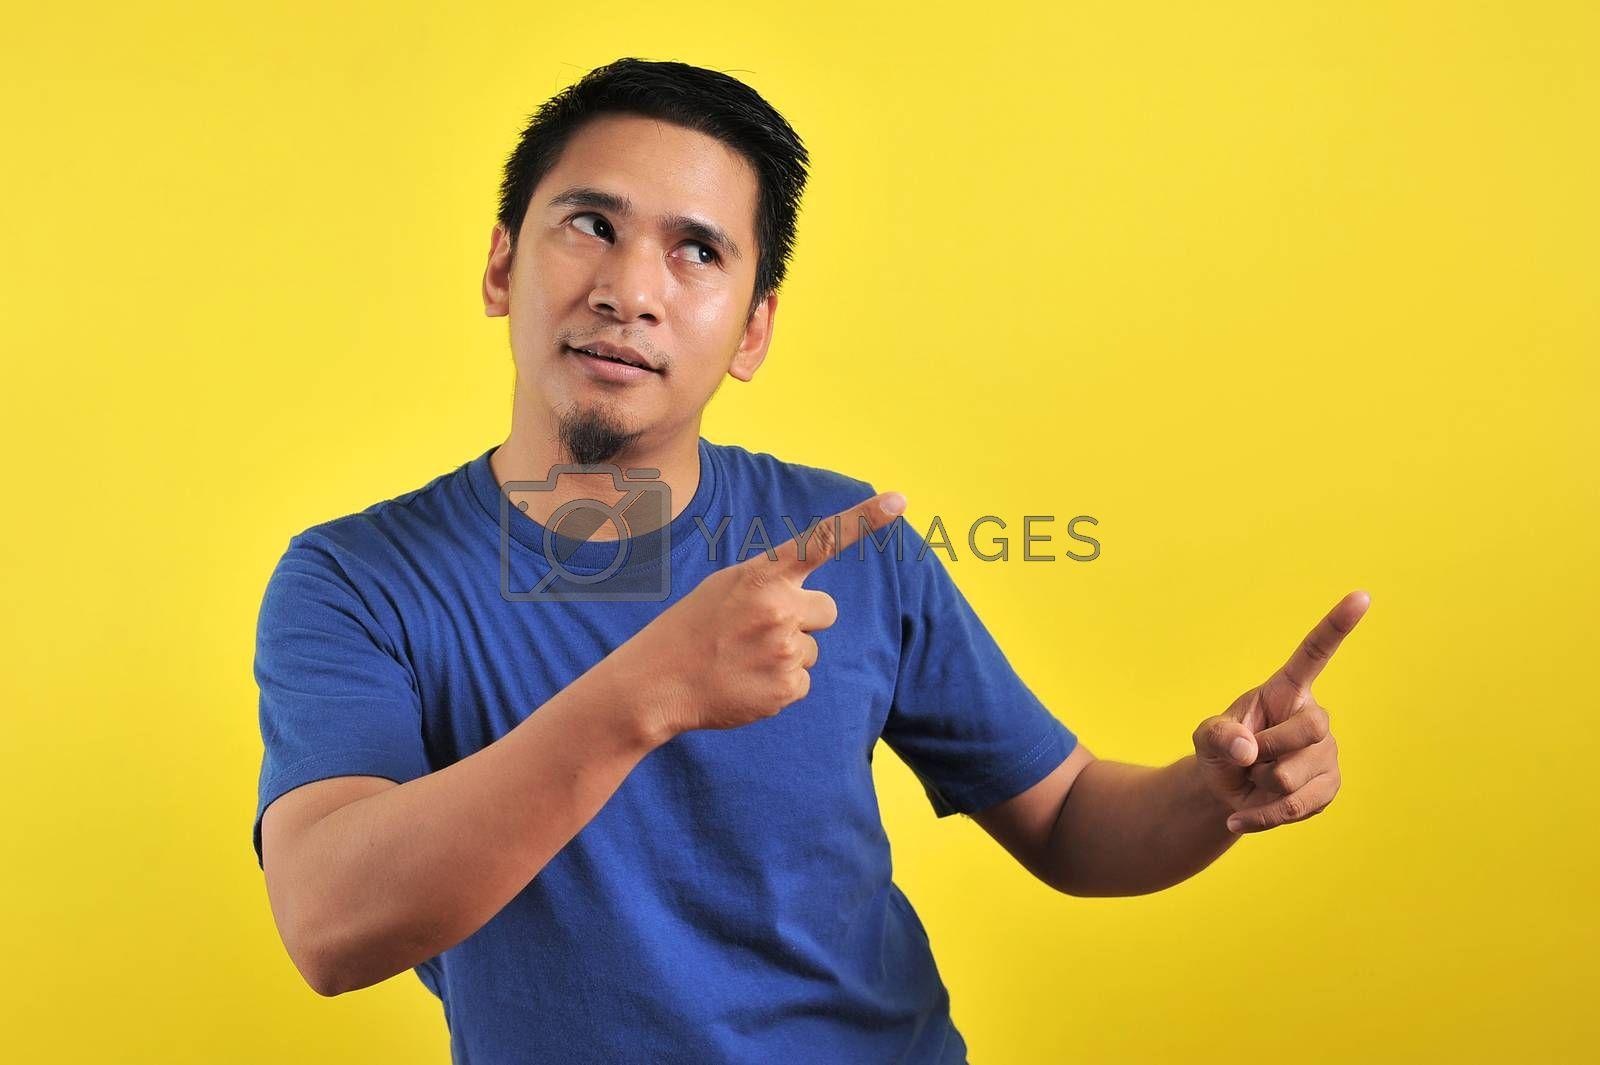 Friendly-looking lively pleasant Asian male with white t-shirt smiling delighted look at copy space joyful. Self-assured pointing, on yellow background